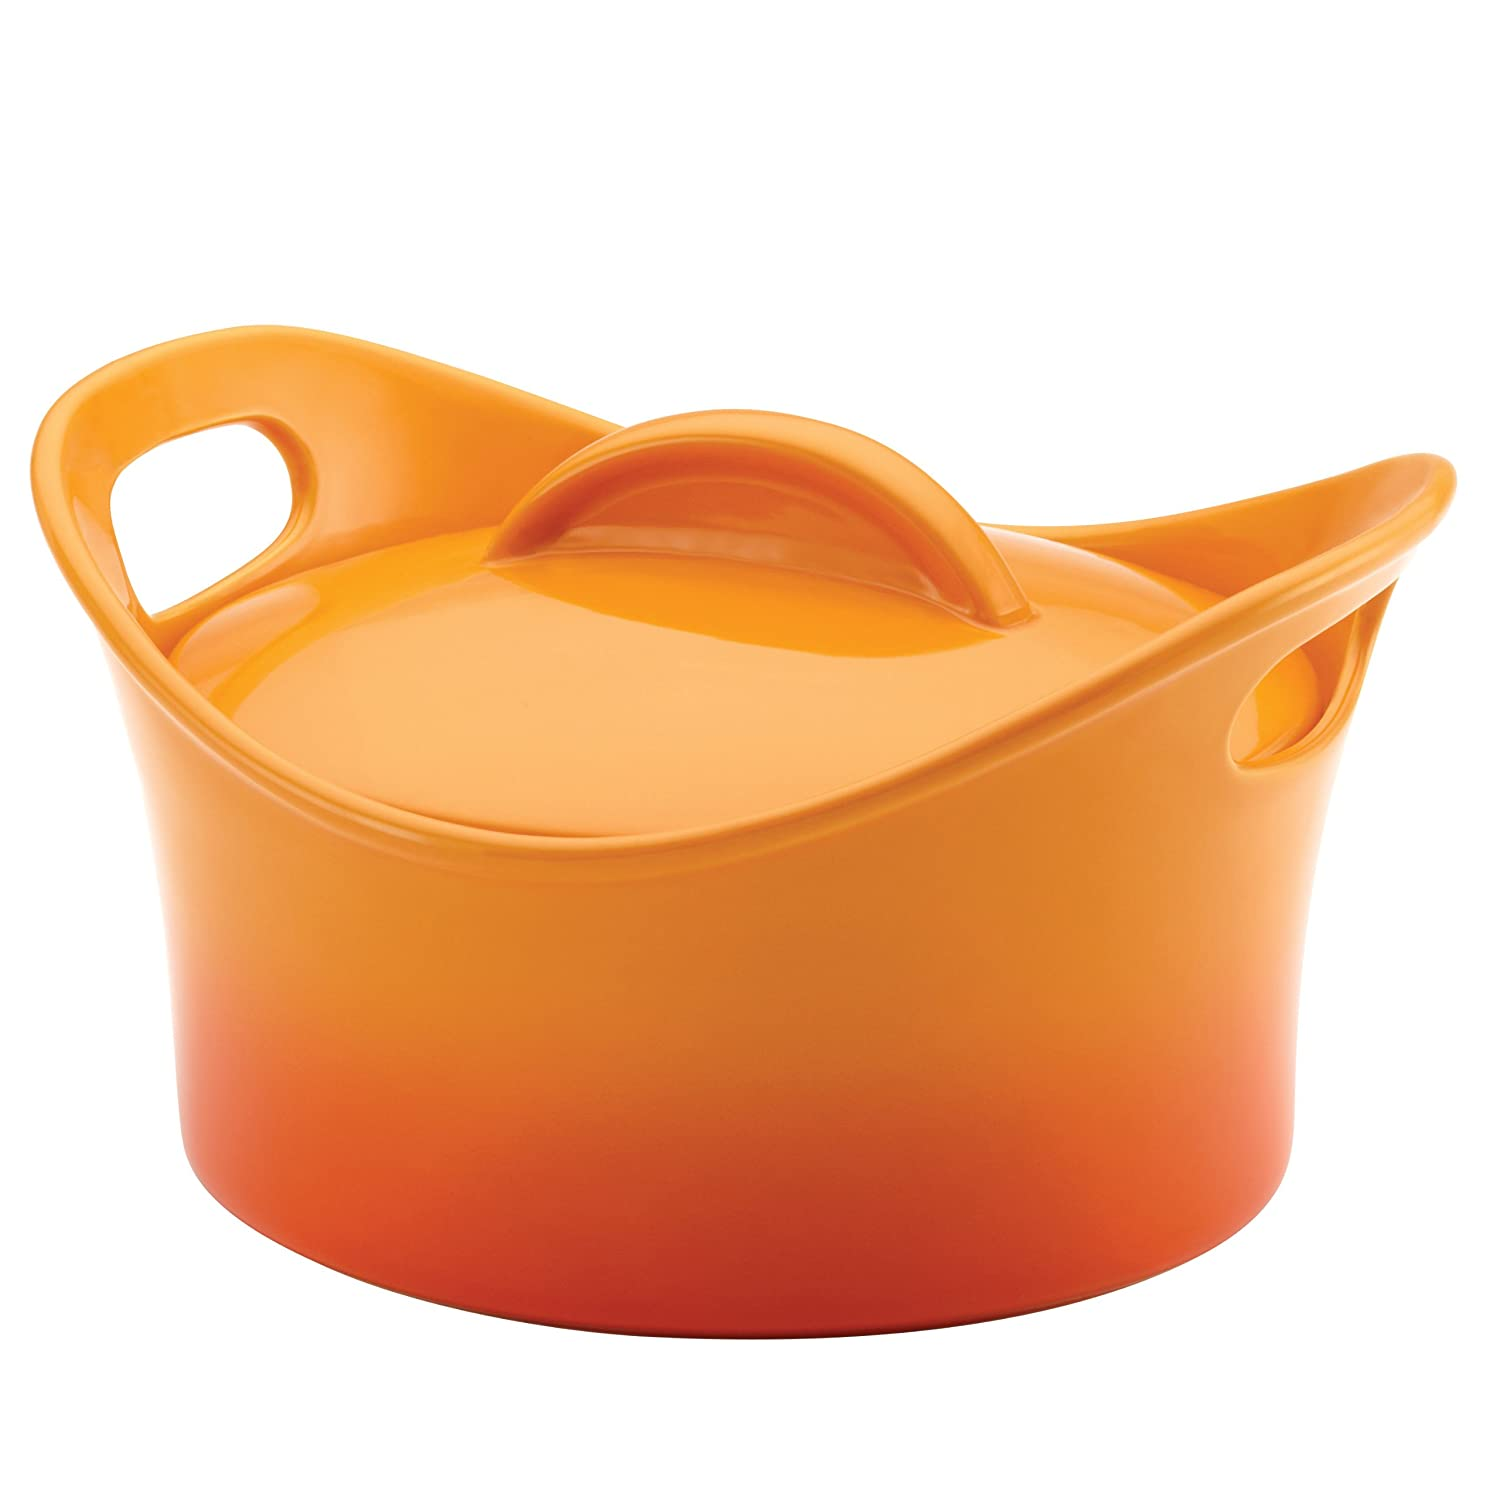 Rachael Ray Stoneware 2-3/4-Quart Covered Bubble and Brown Casserround Casserole, Two-Tone Orange Gradient Meyer 58533